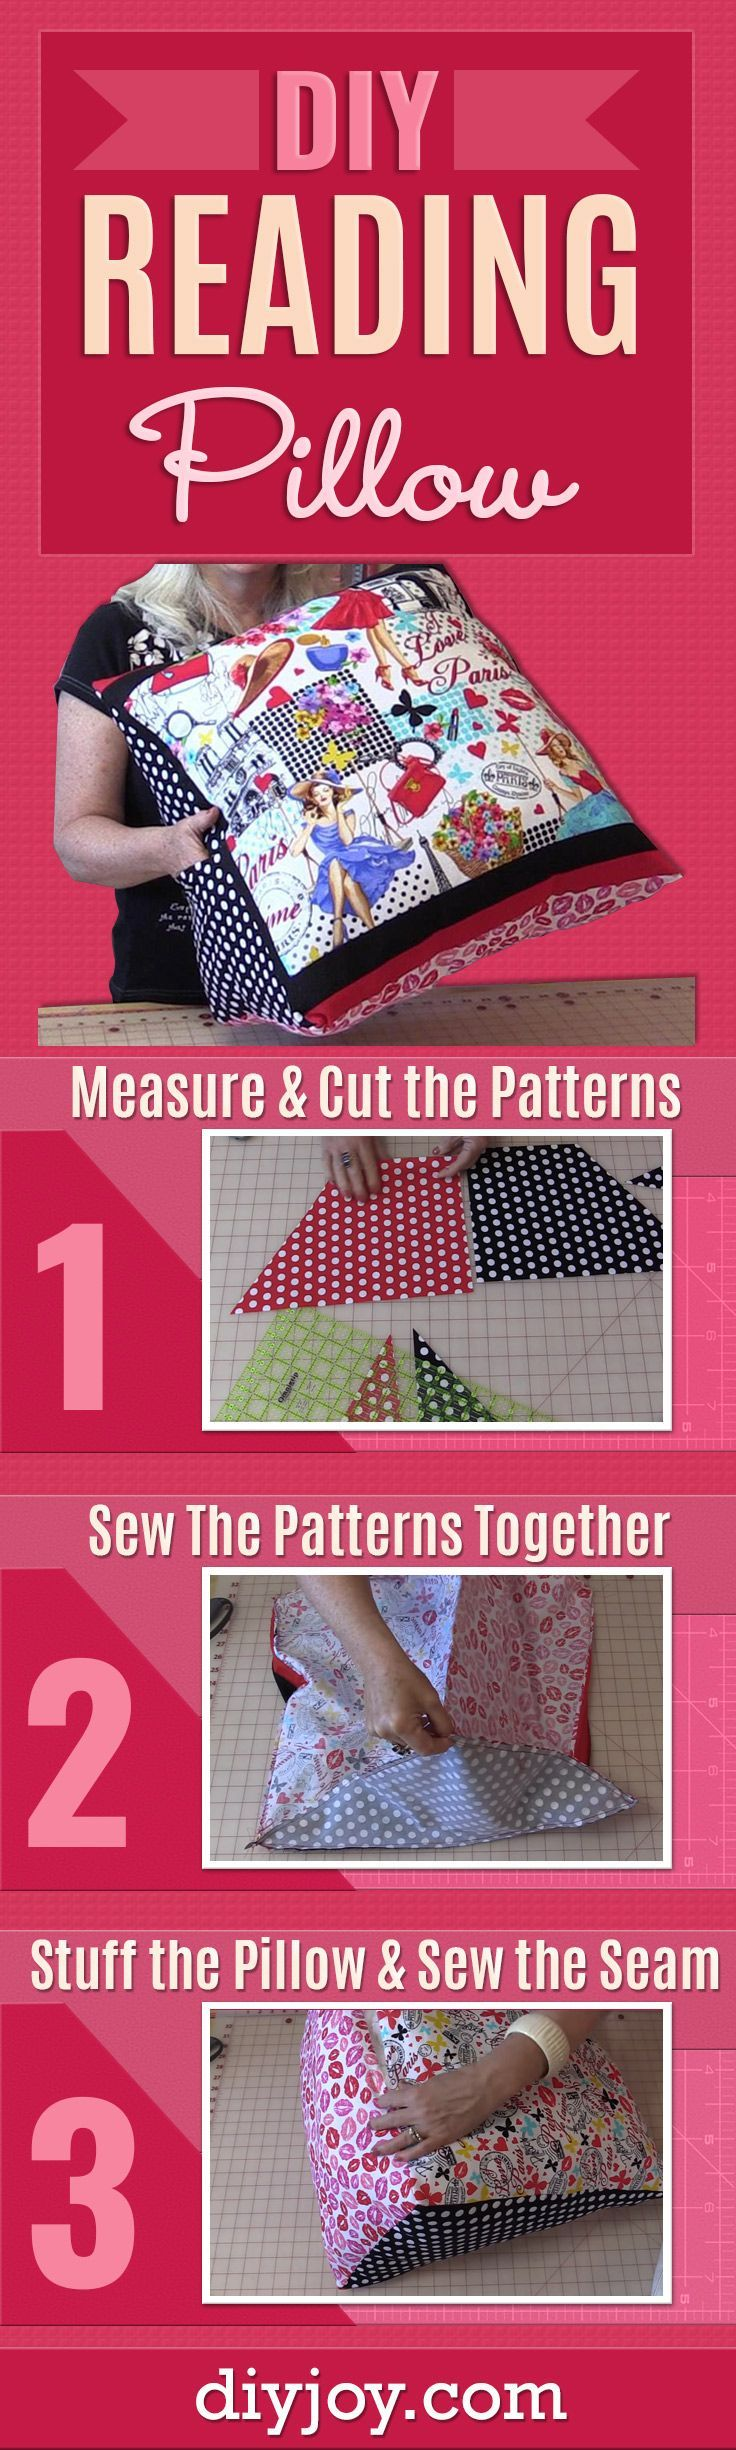 best 25 sewing patterns free home ideas only on pinterest kid